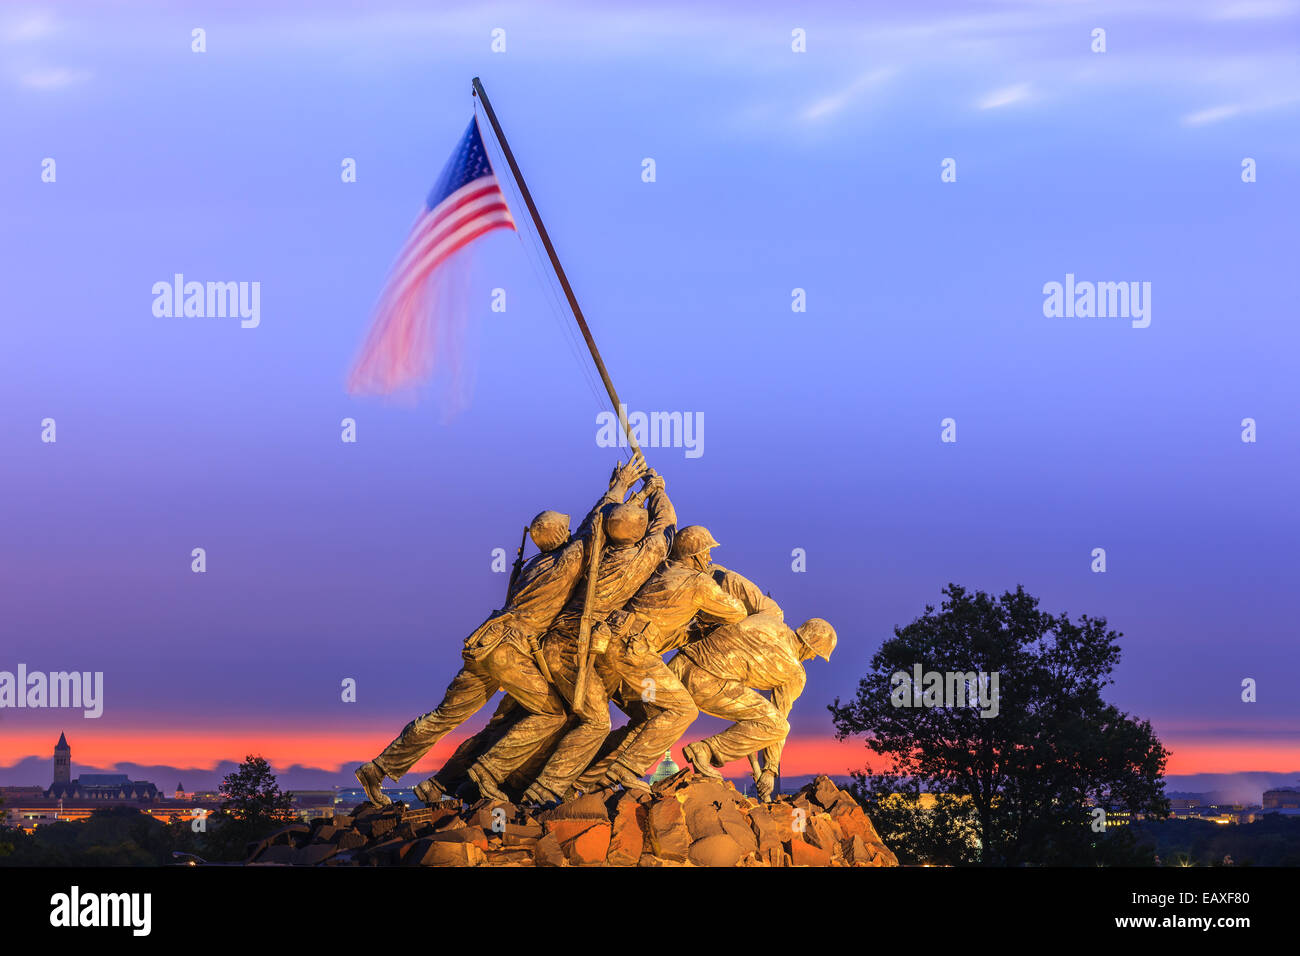 US Marine Corps War Memorial, also known as the Iwo-Jima Memorial at Arlington, Virginia, USA. Stock Photo